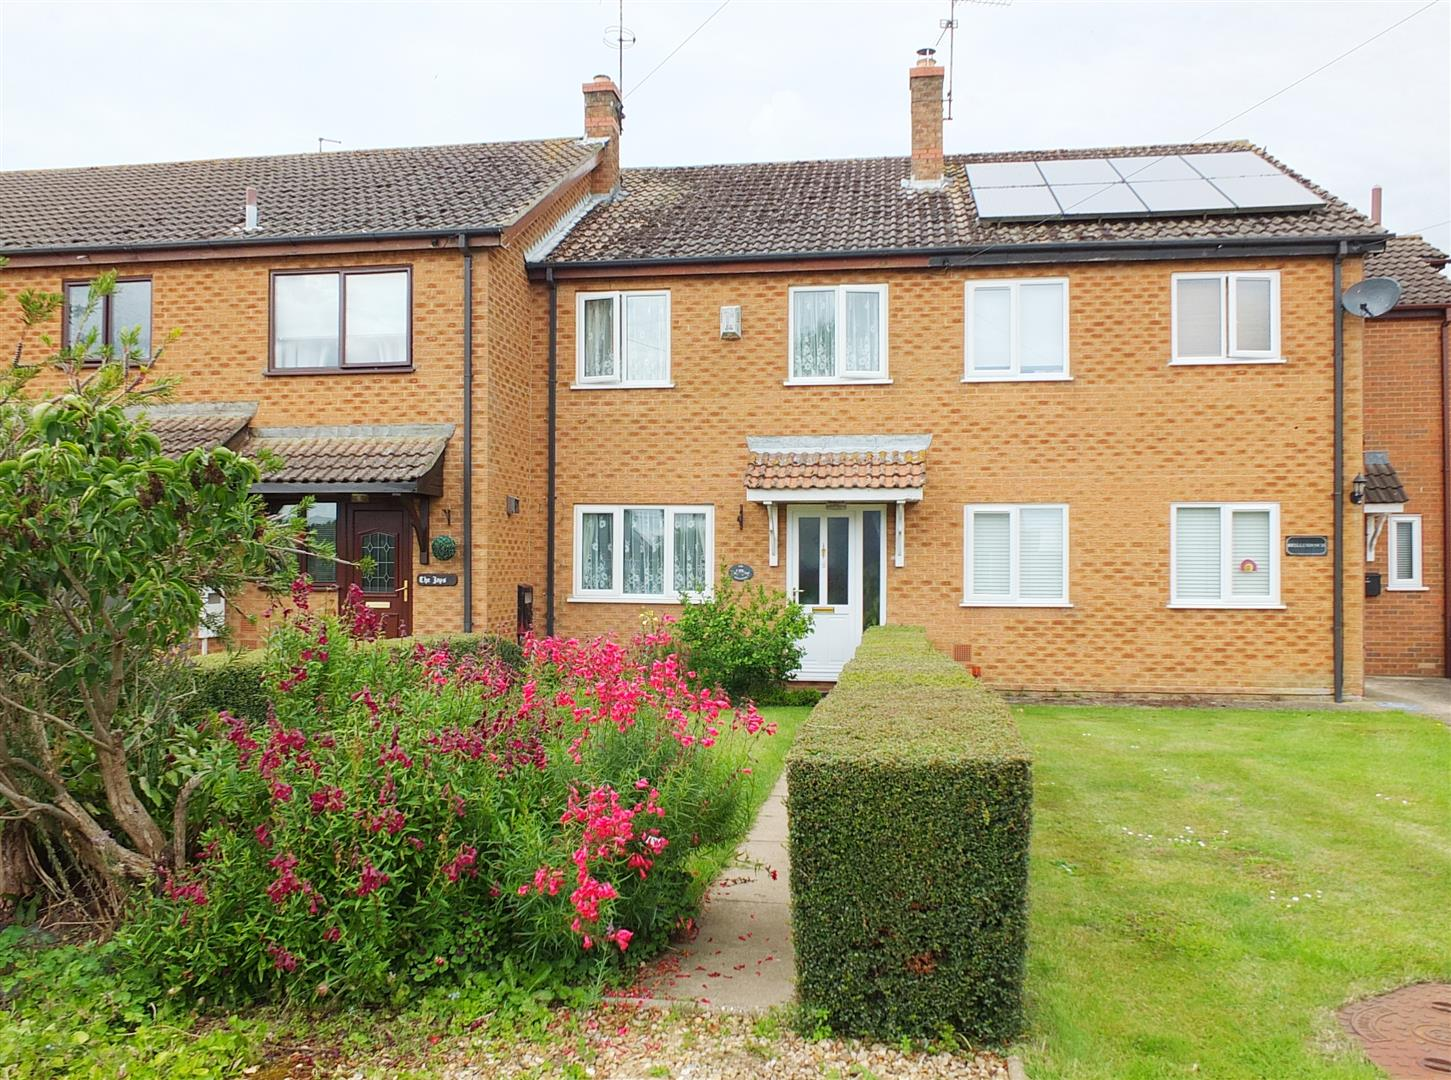 2 bed terraced house for sale in Lutton Spalding, PE12 9LQ 0